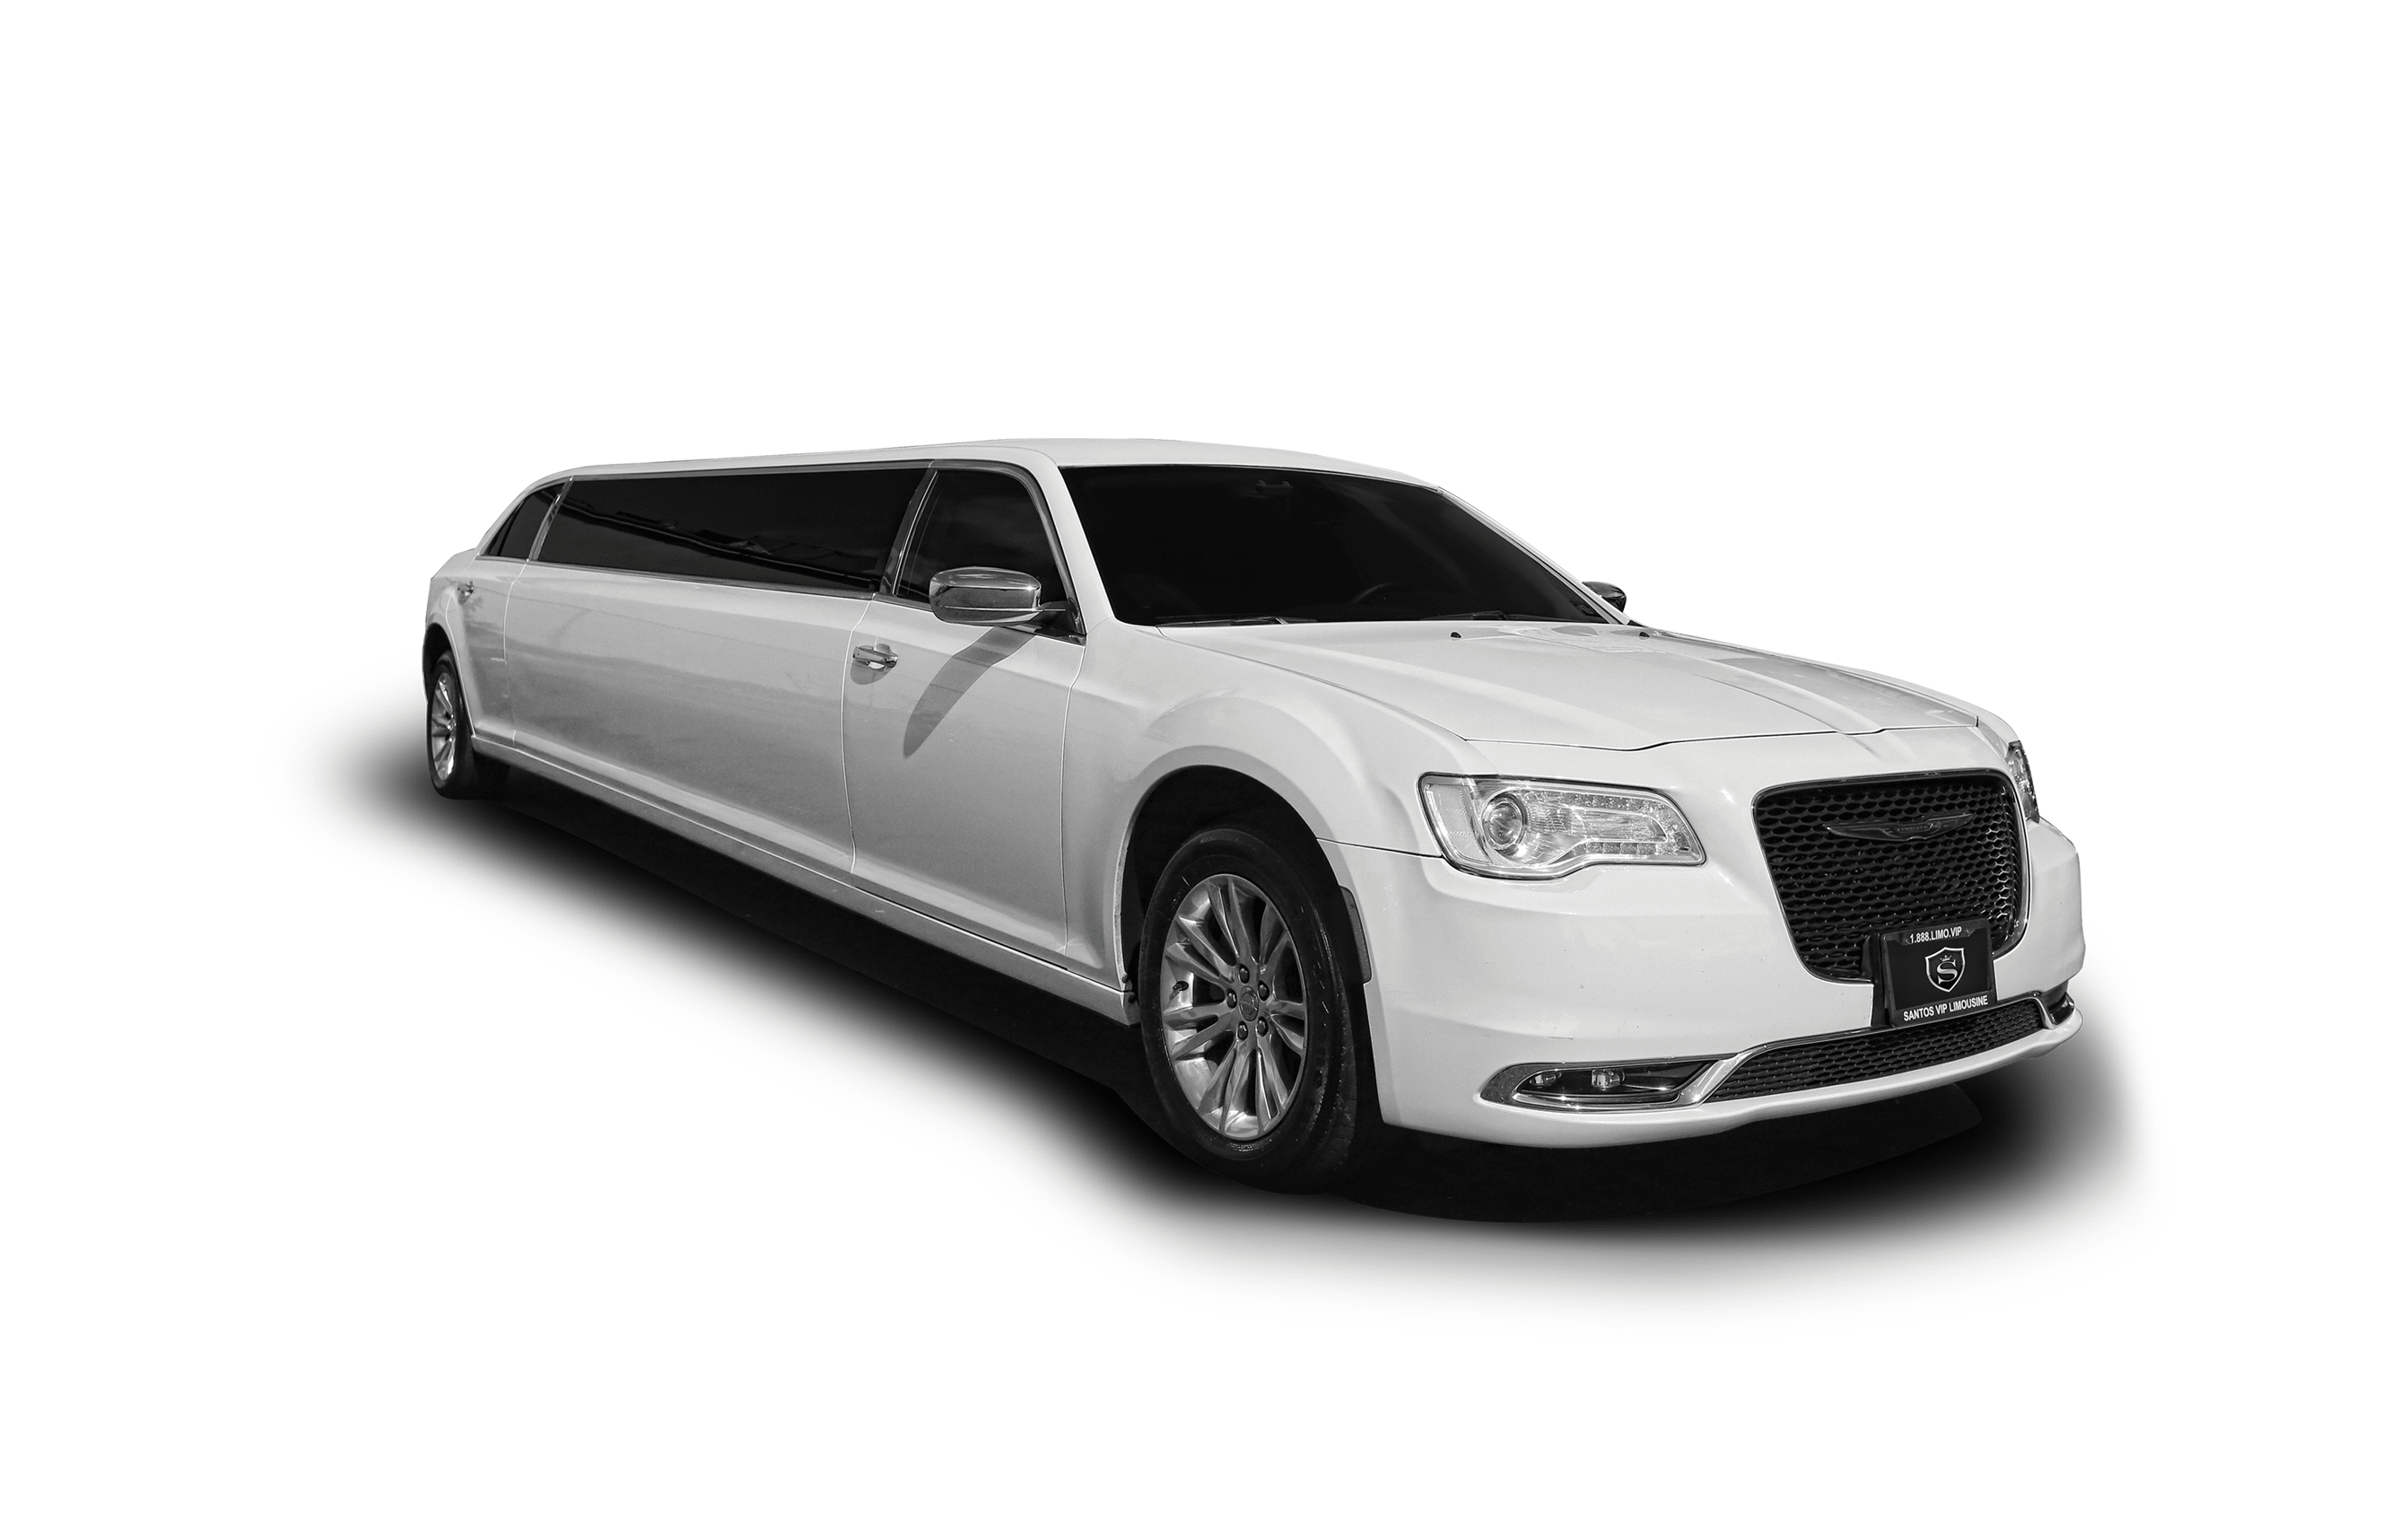 Chrysler 300 stretch limousine bachelorette party limo